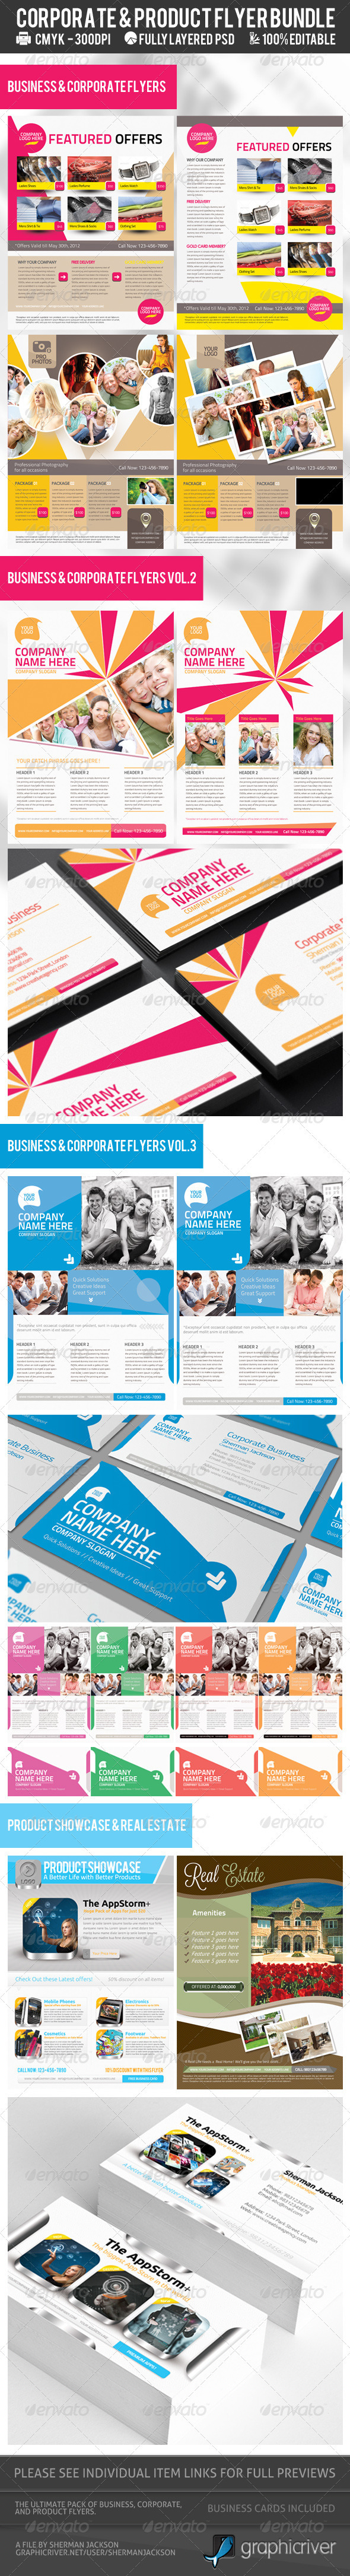 Corporate & Product Flyer Premium Bundle - Corporate Flyers